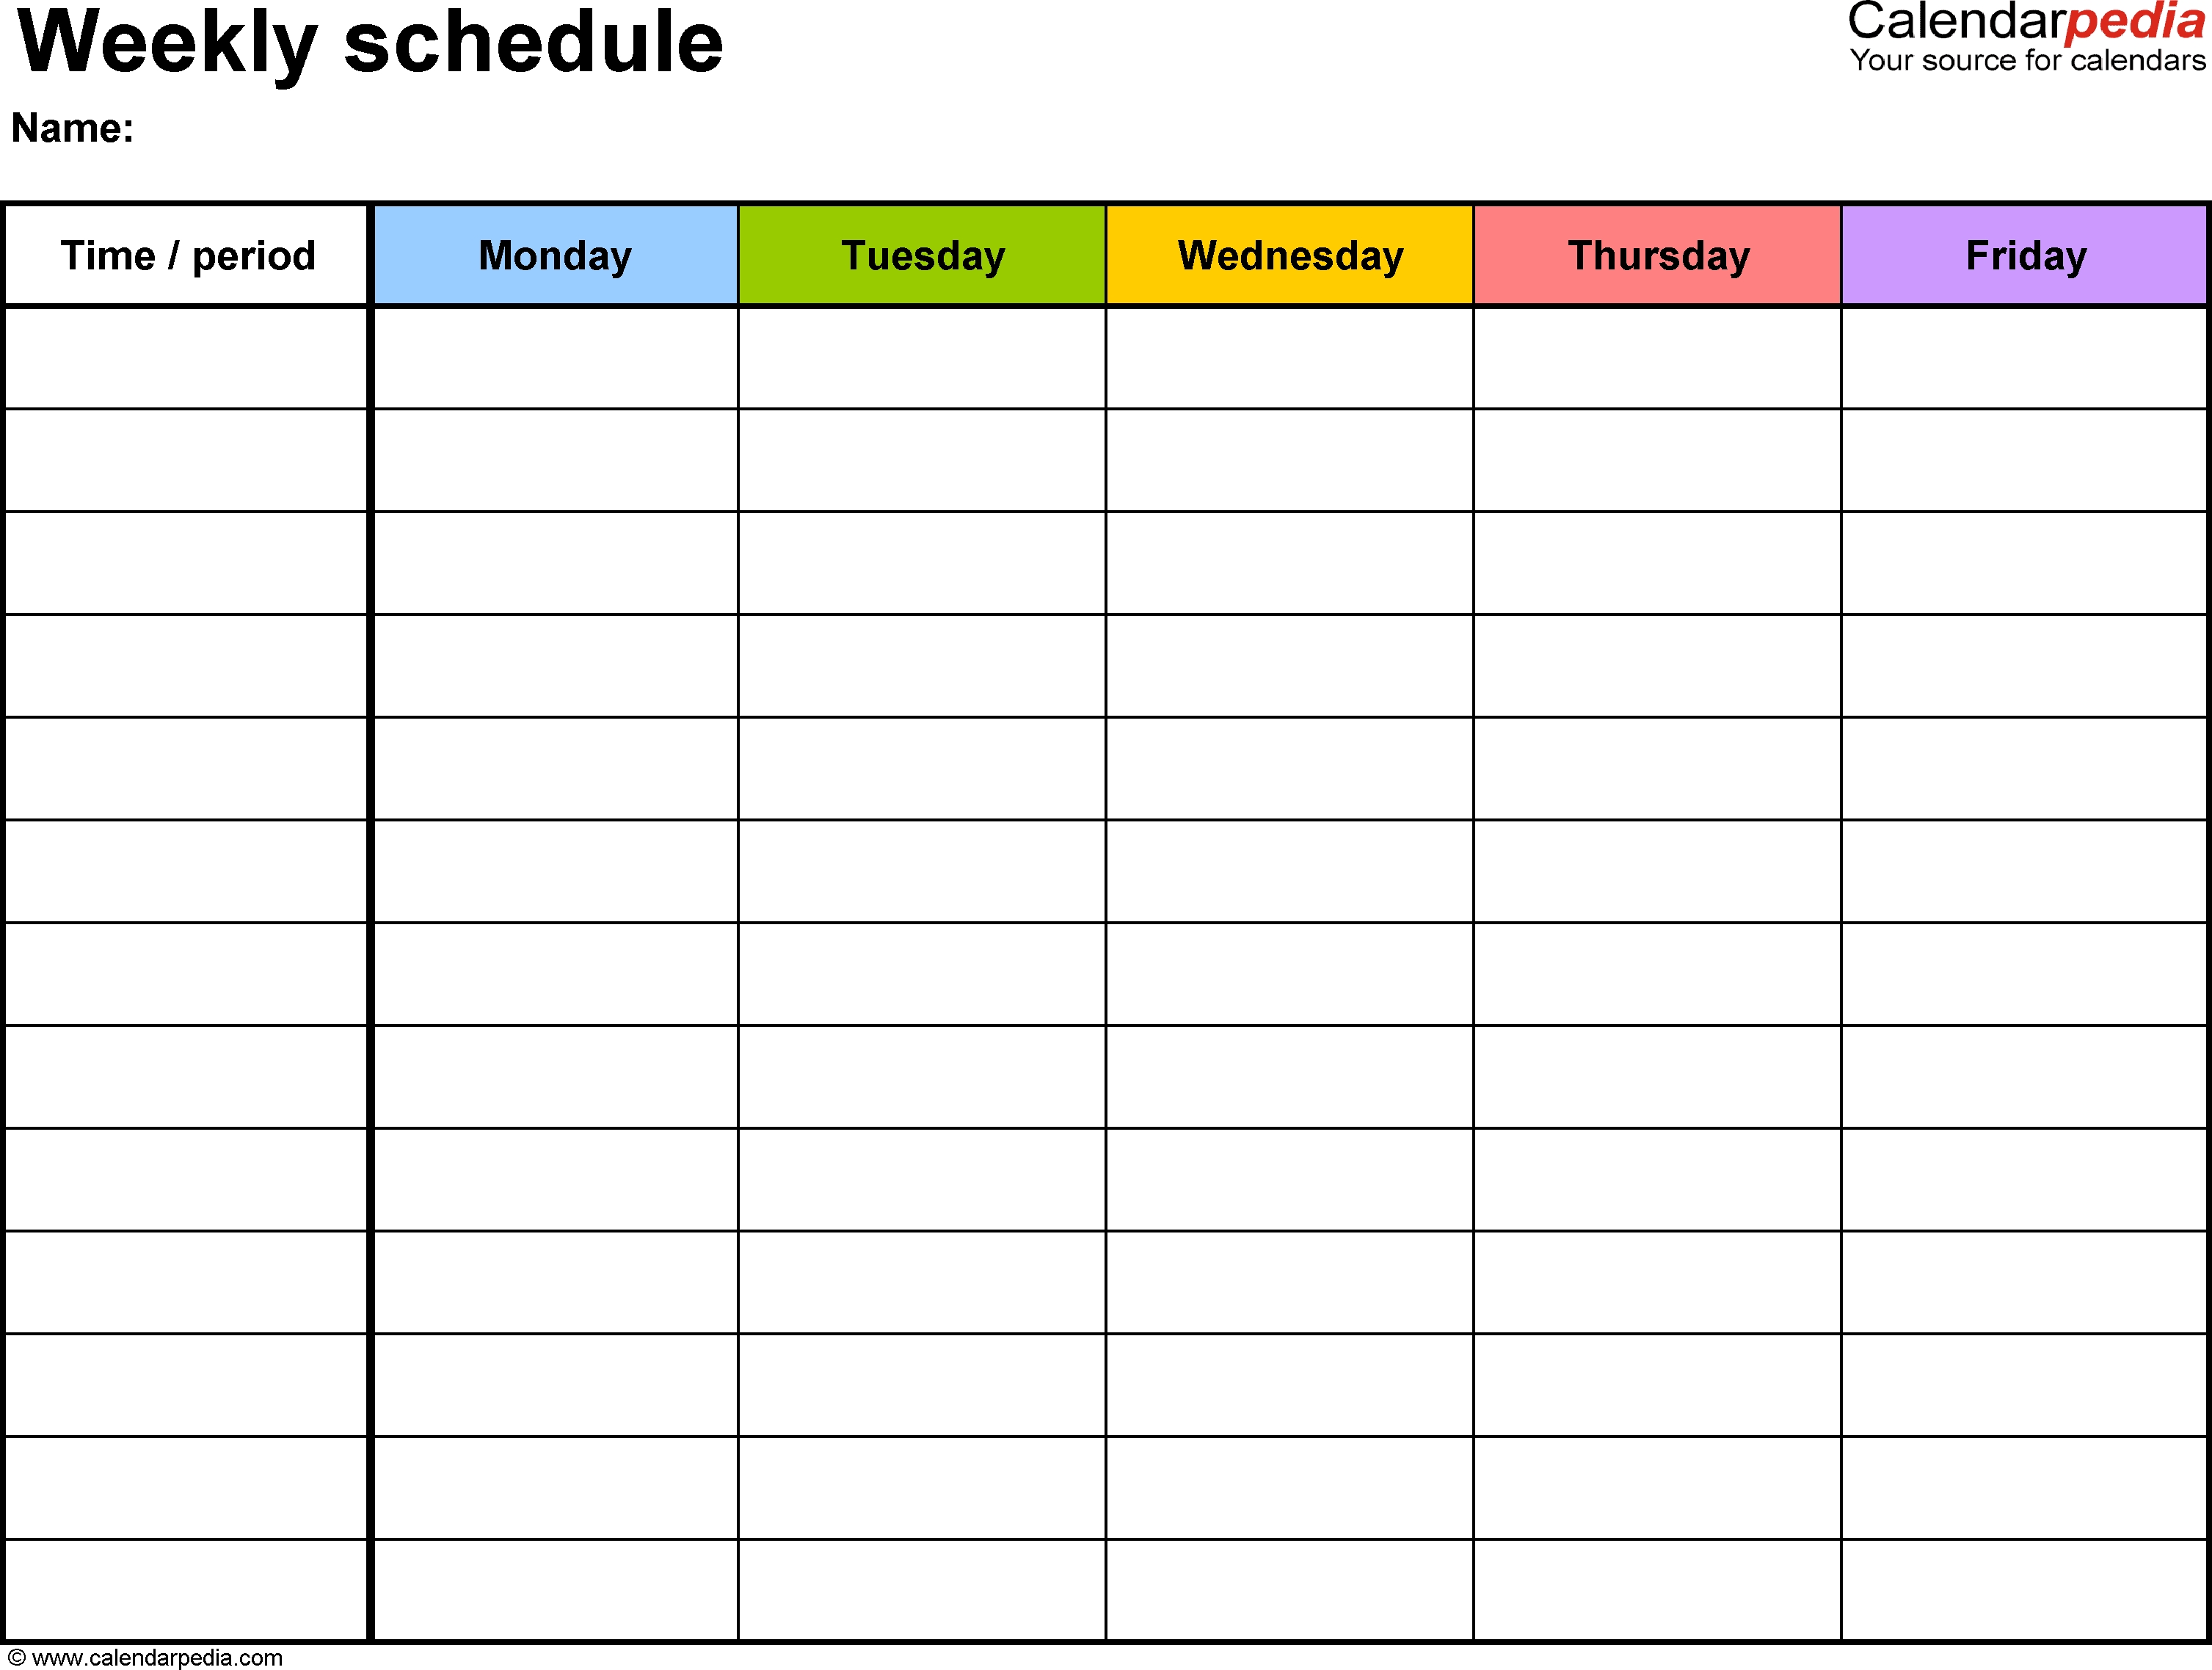 Free Weekly Schedule Templates For Word - 18 Templates with Days Of The Week Calendar Template